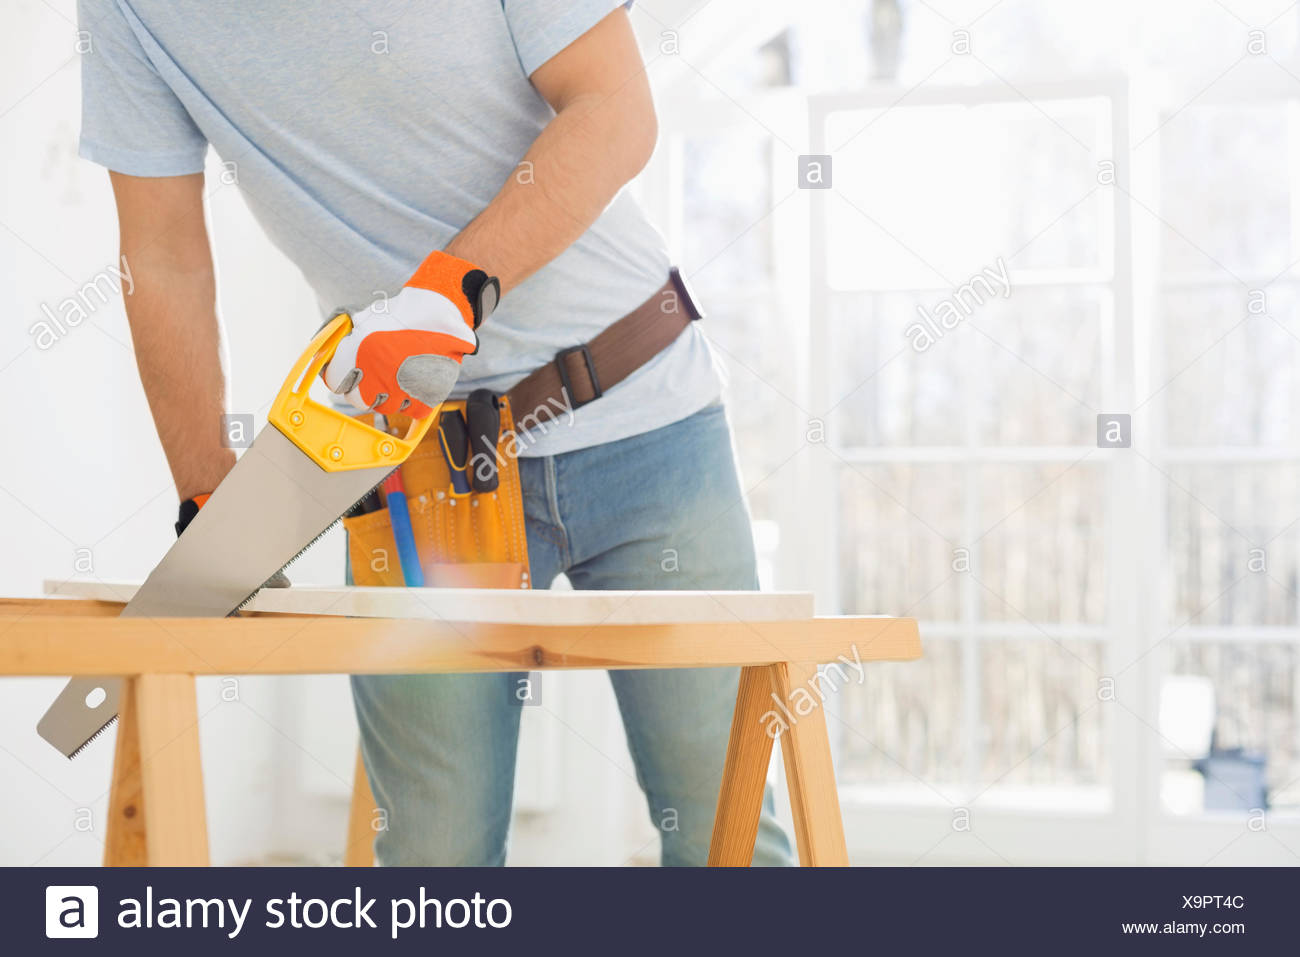 Midsection of man sawing wood in new house - Stock Image